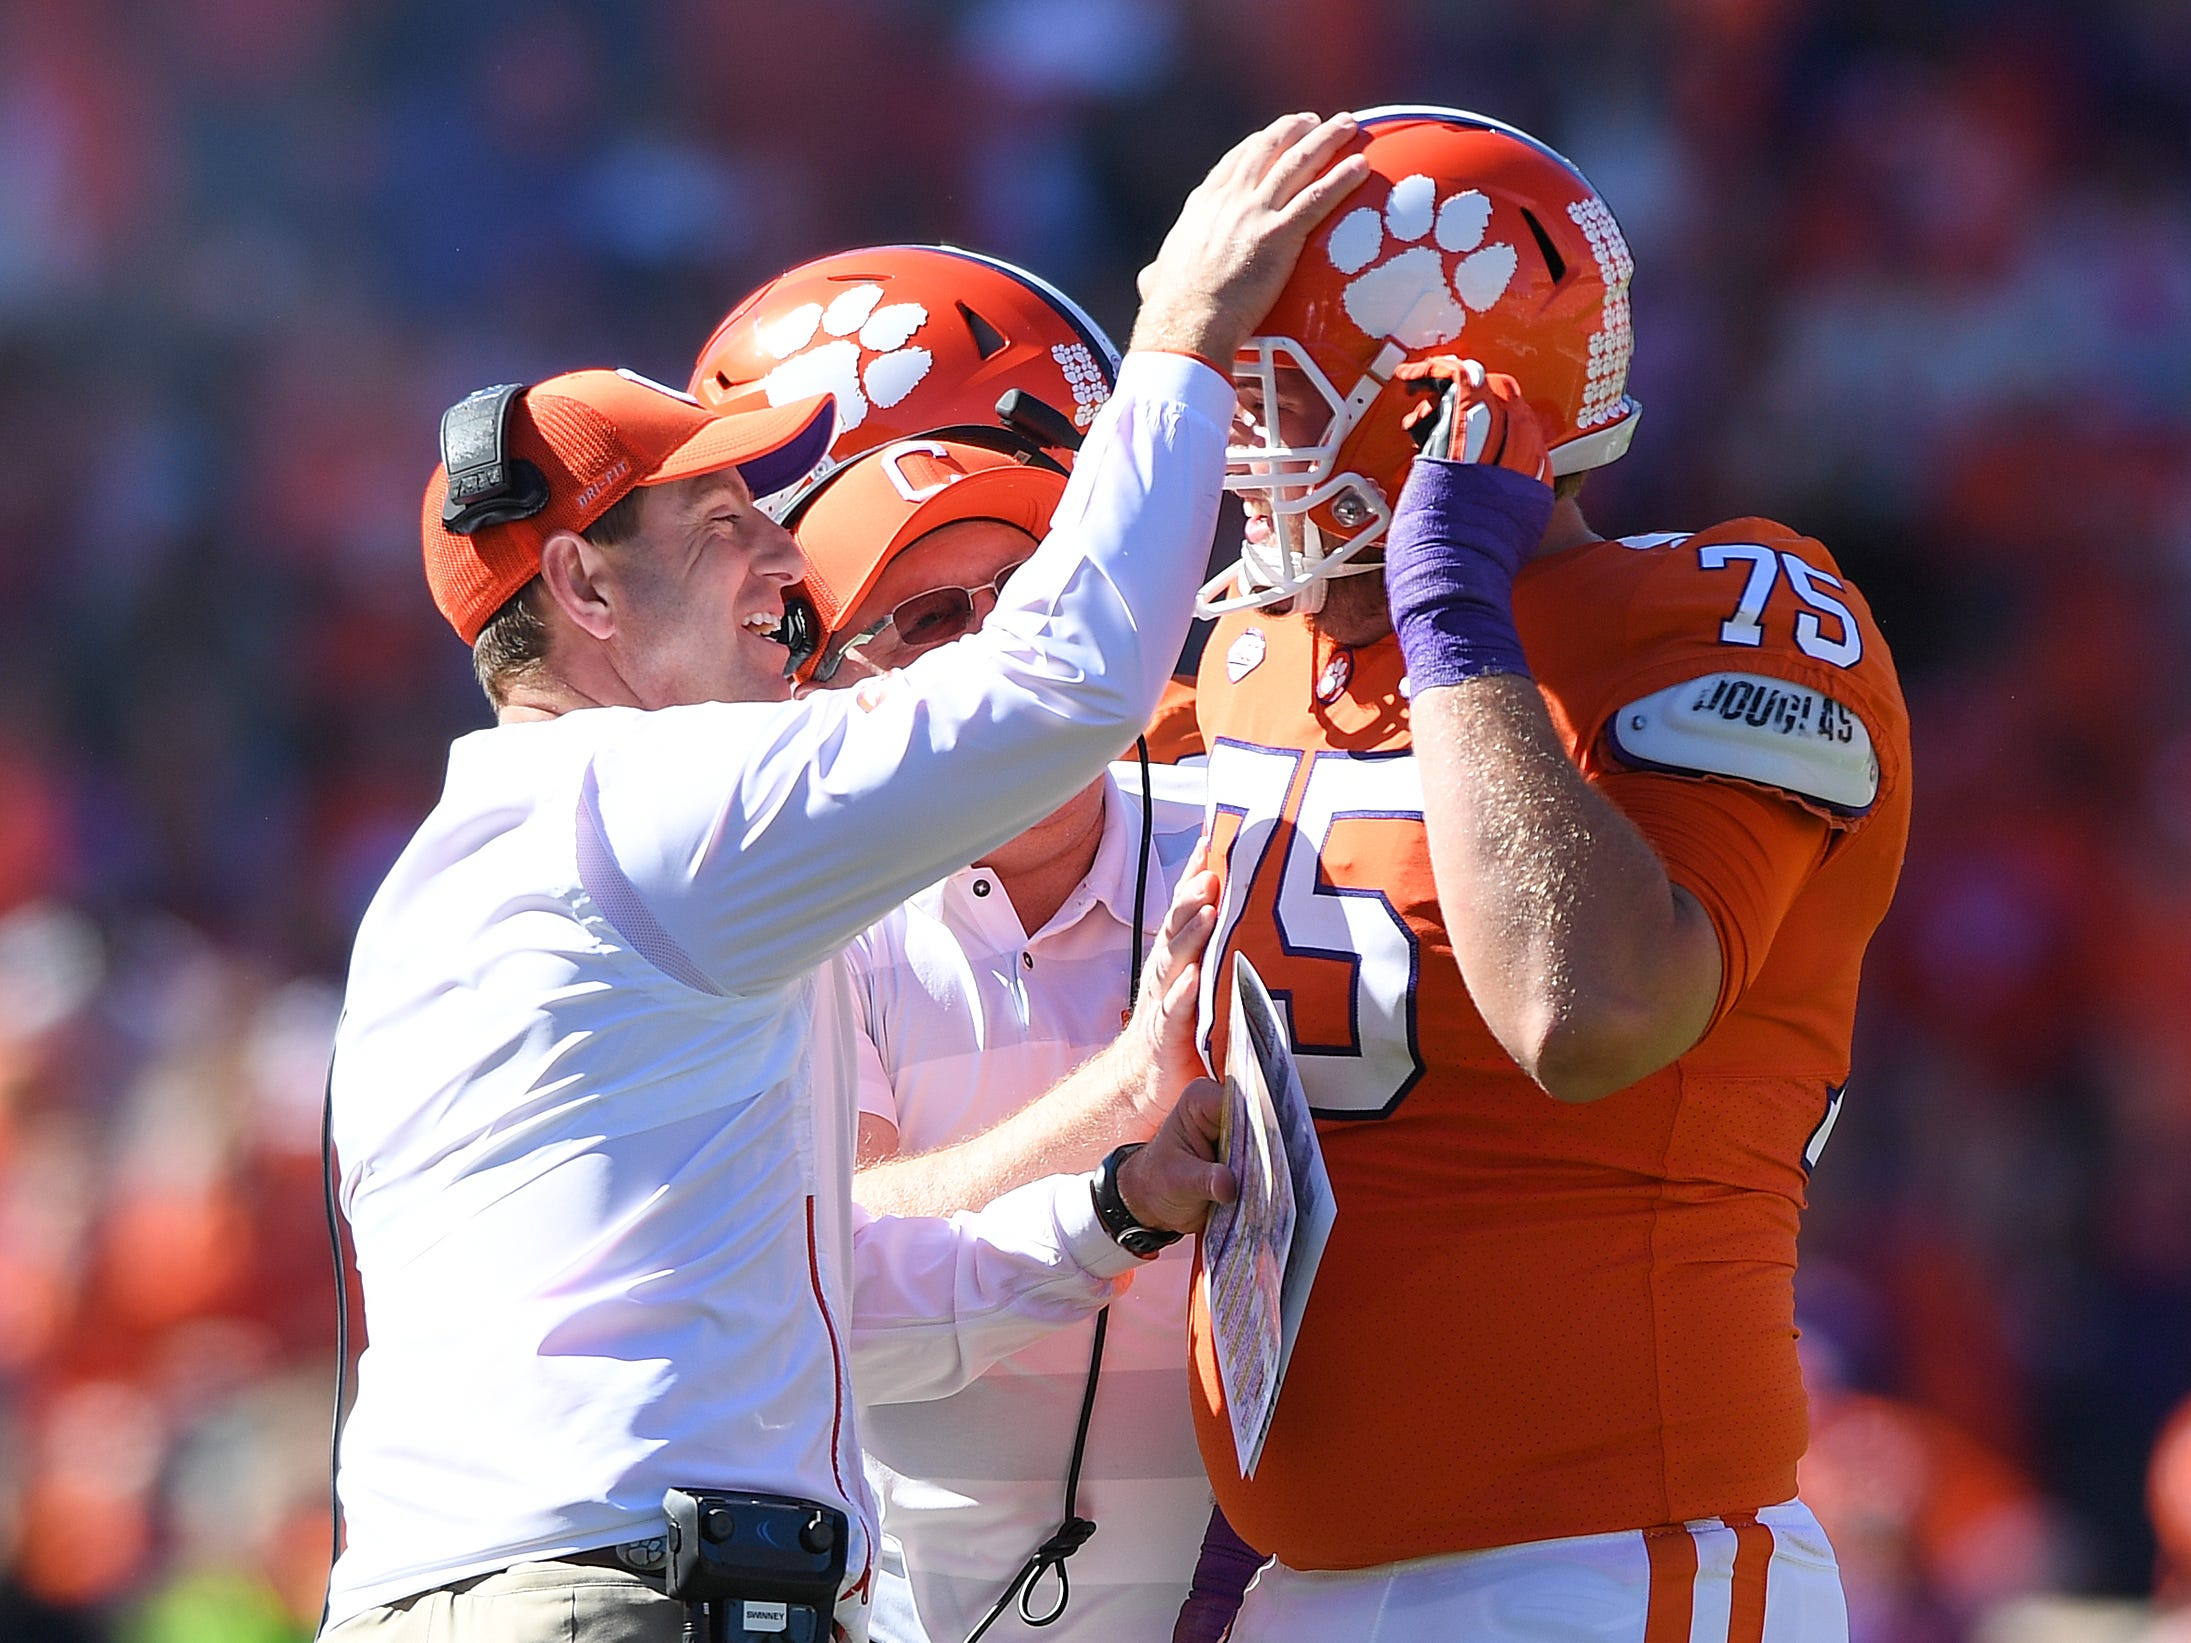 Clemson offensive lineman Mitch Hyatt (75) is congratulated by offensive line coach Robbie Caldwell, center, and head coach Dabo Swinney after breaking the record for most offensive plays by a Clemson player in a carrier during the 2nd quarter against Louisville Saturday, November 3, 2018 at Clemson's Memorial Stadium.